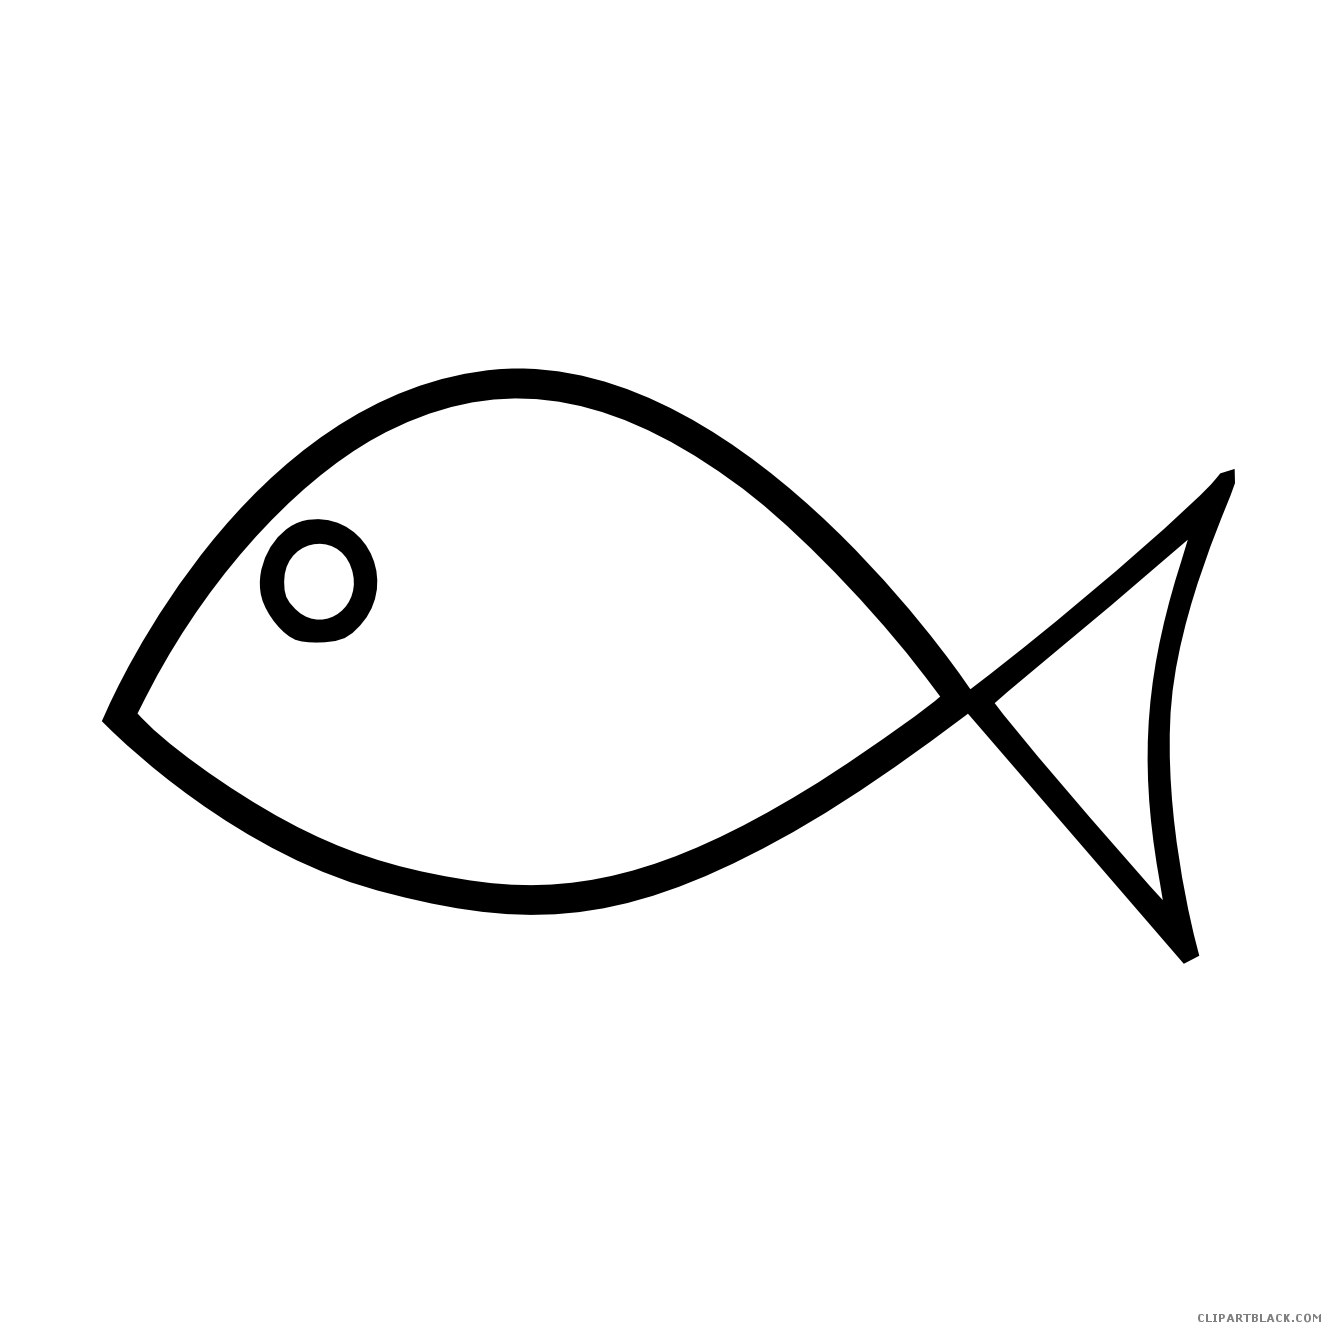 Fish outline clipart png free download Fish Outline Clipart - Page 3 of 3 - ClipartBlack.com png free download